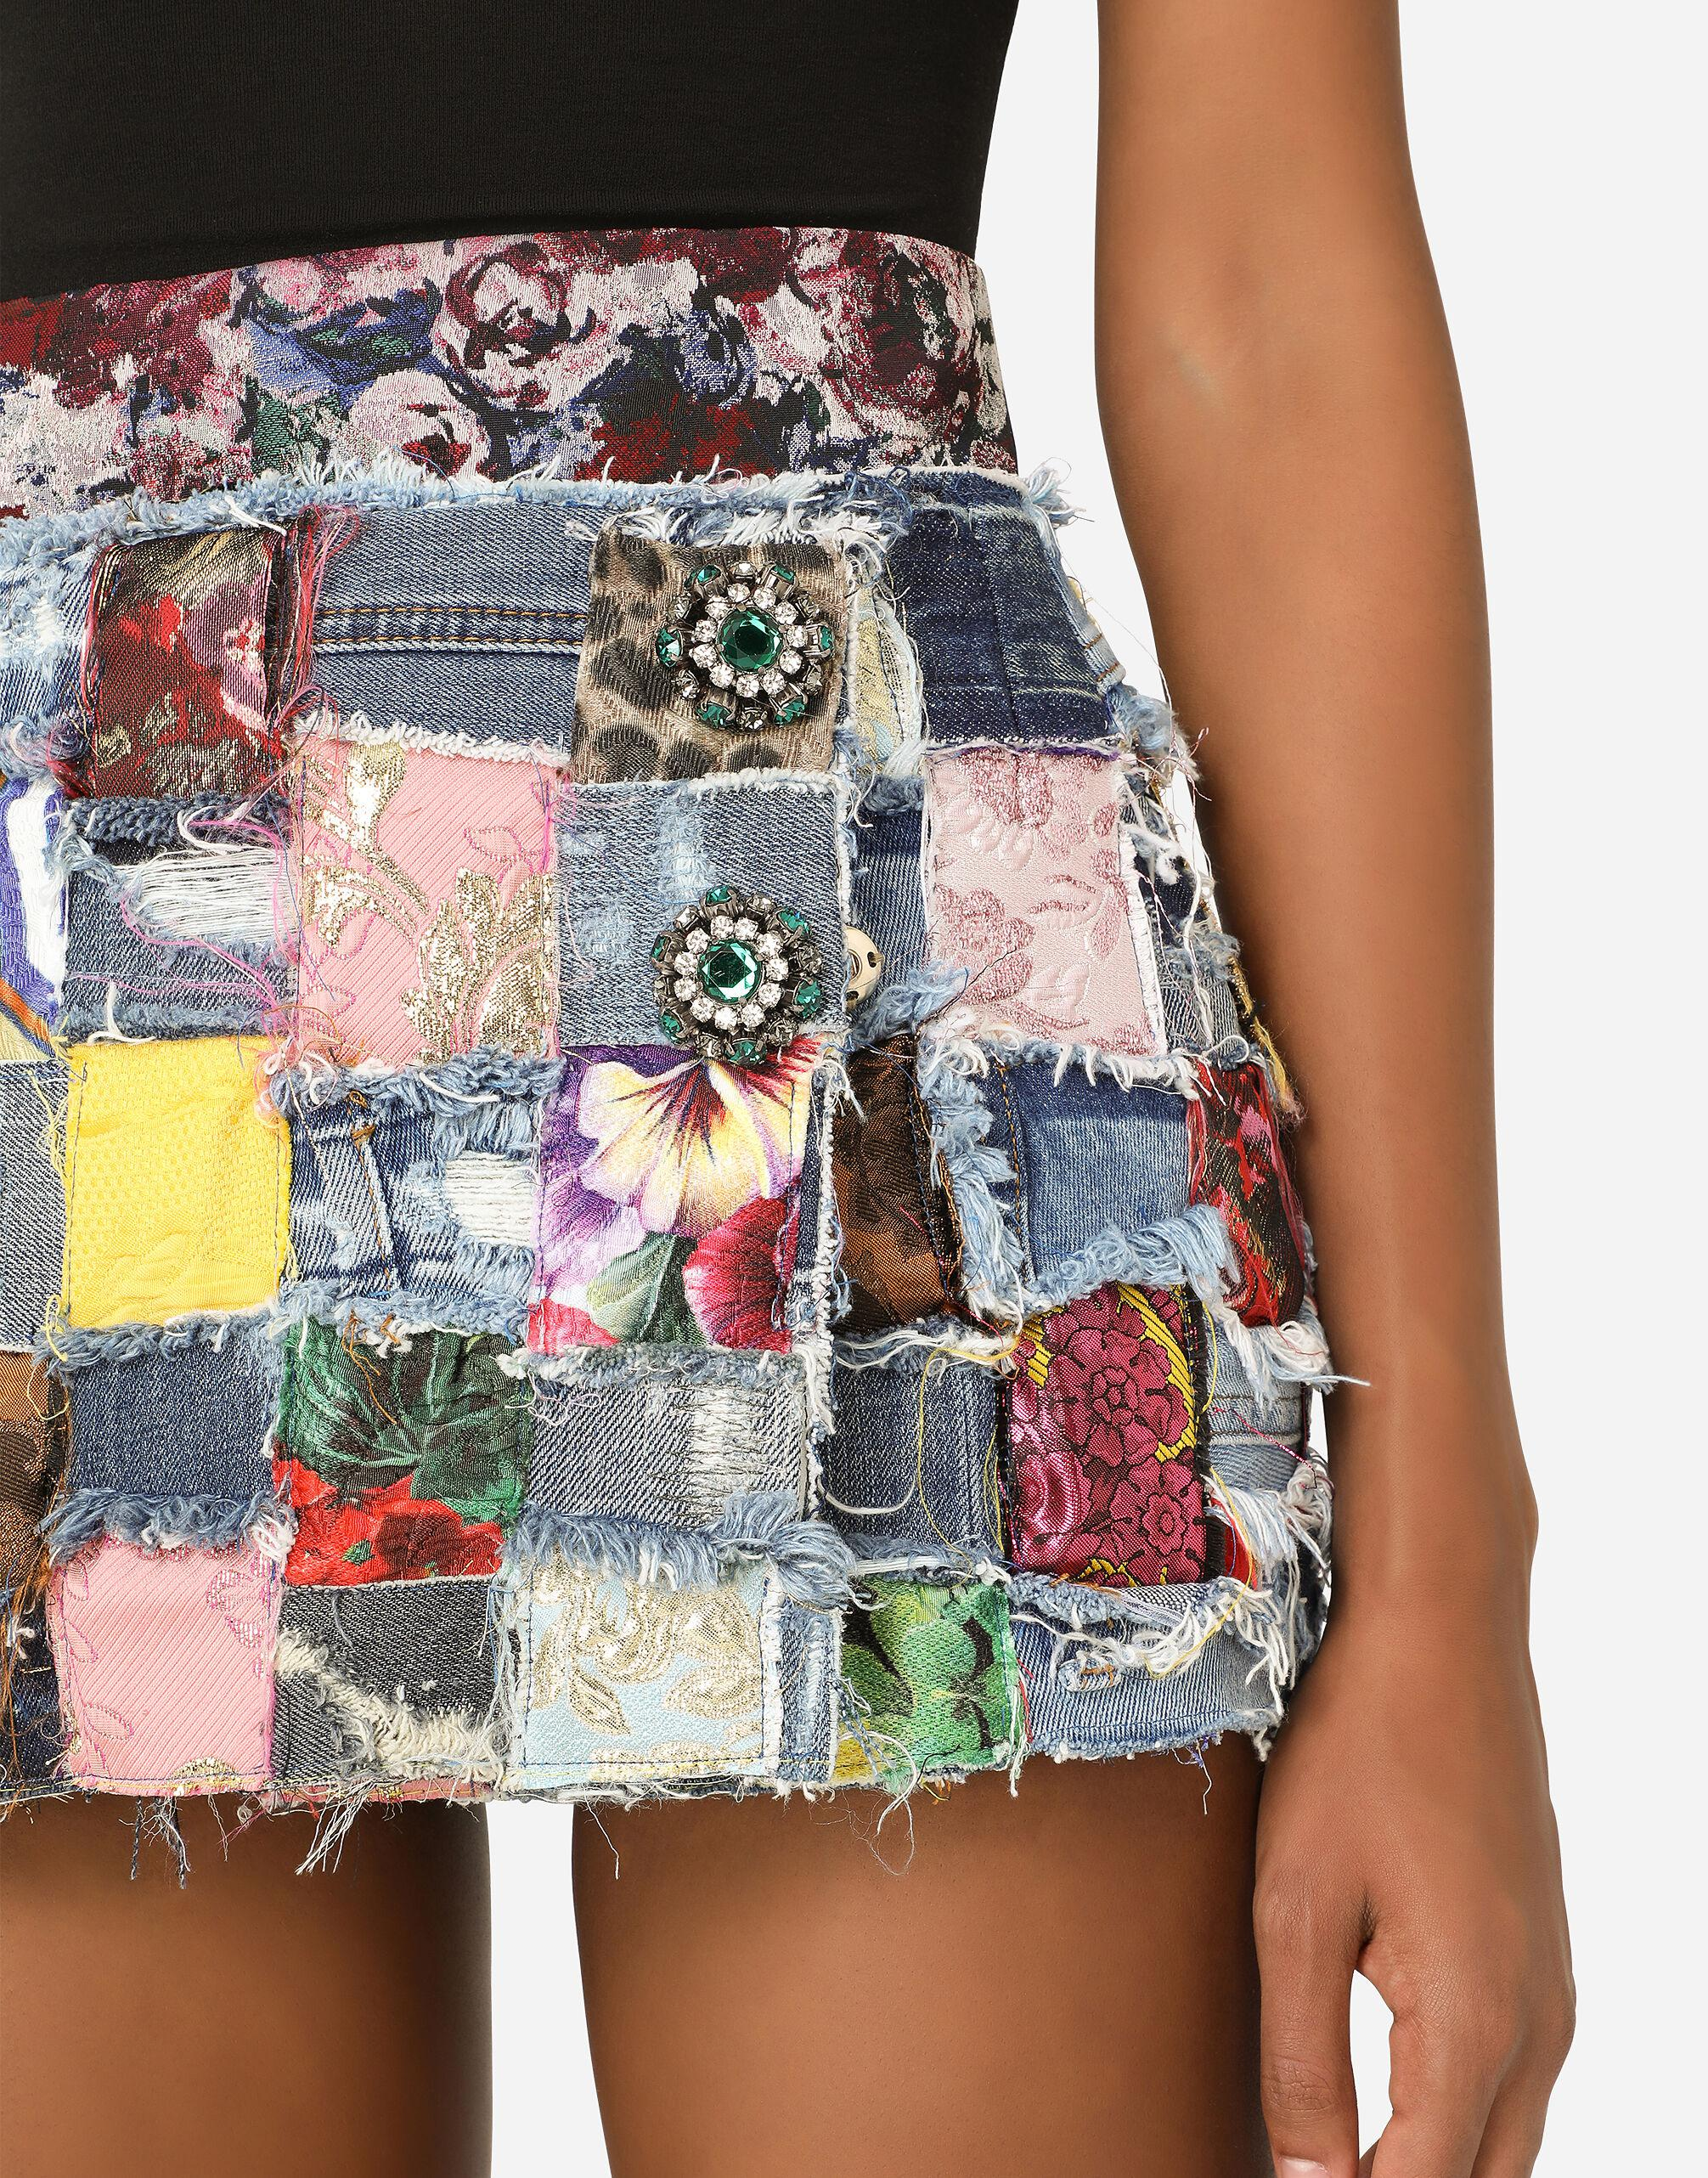 Denim miniskirt with interwoven patchwork detailing and bejeweled buttons 2